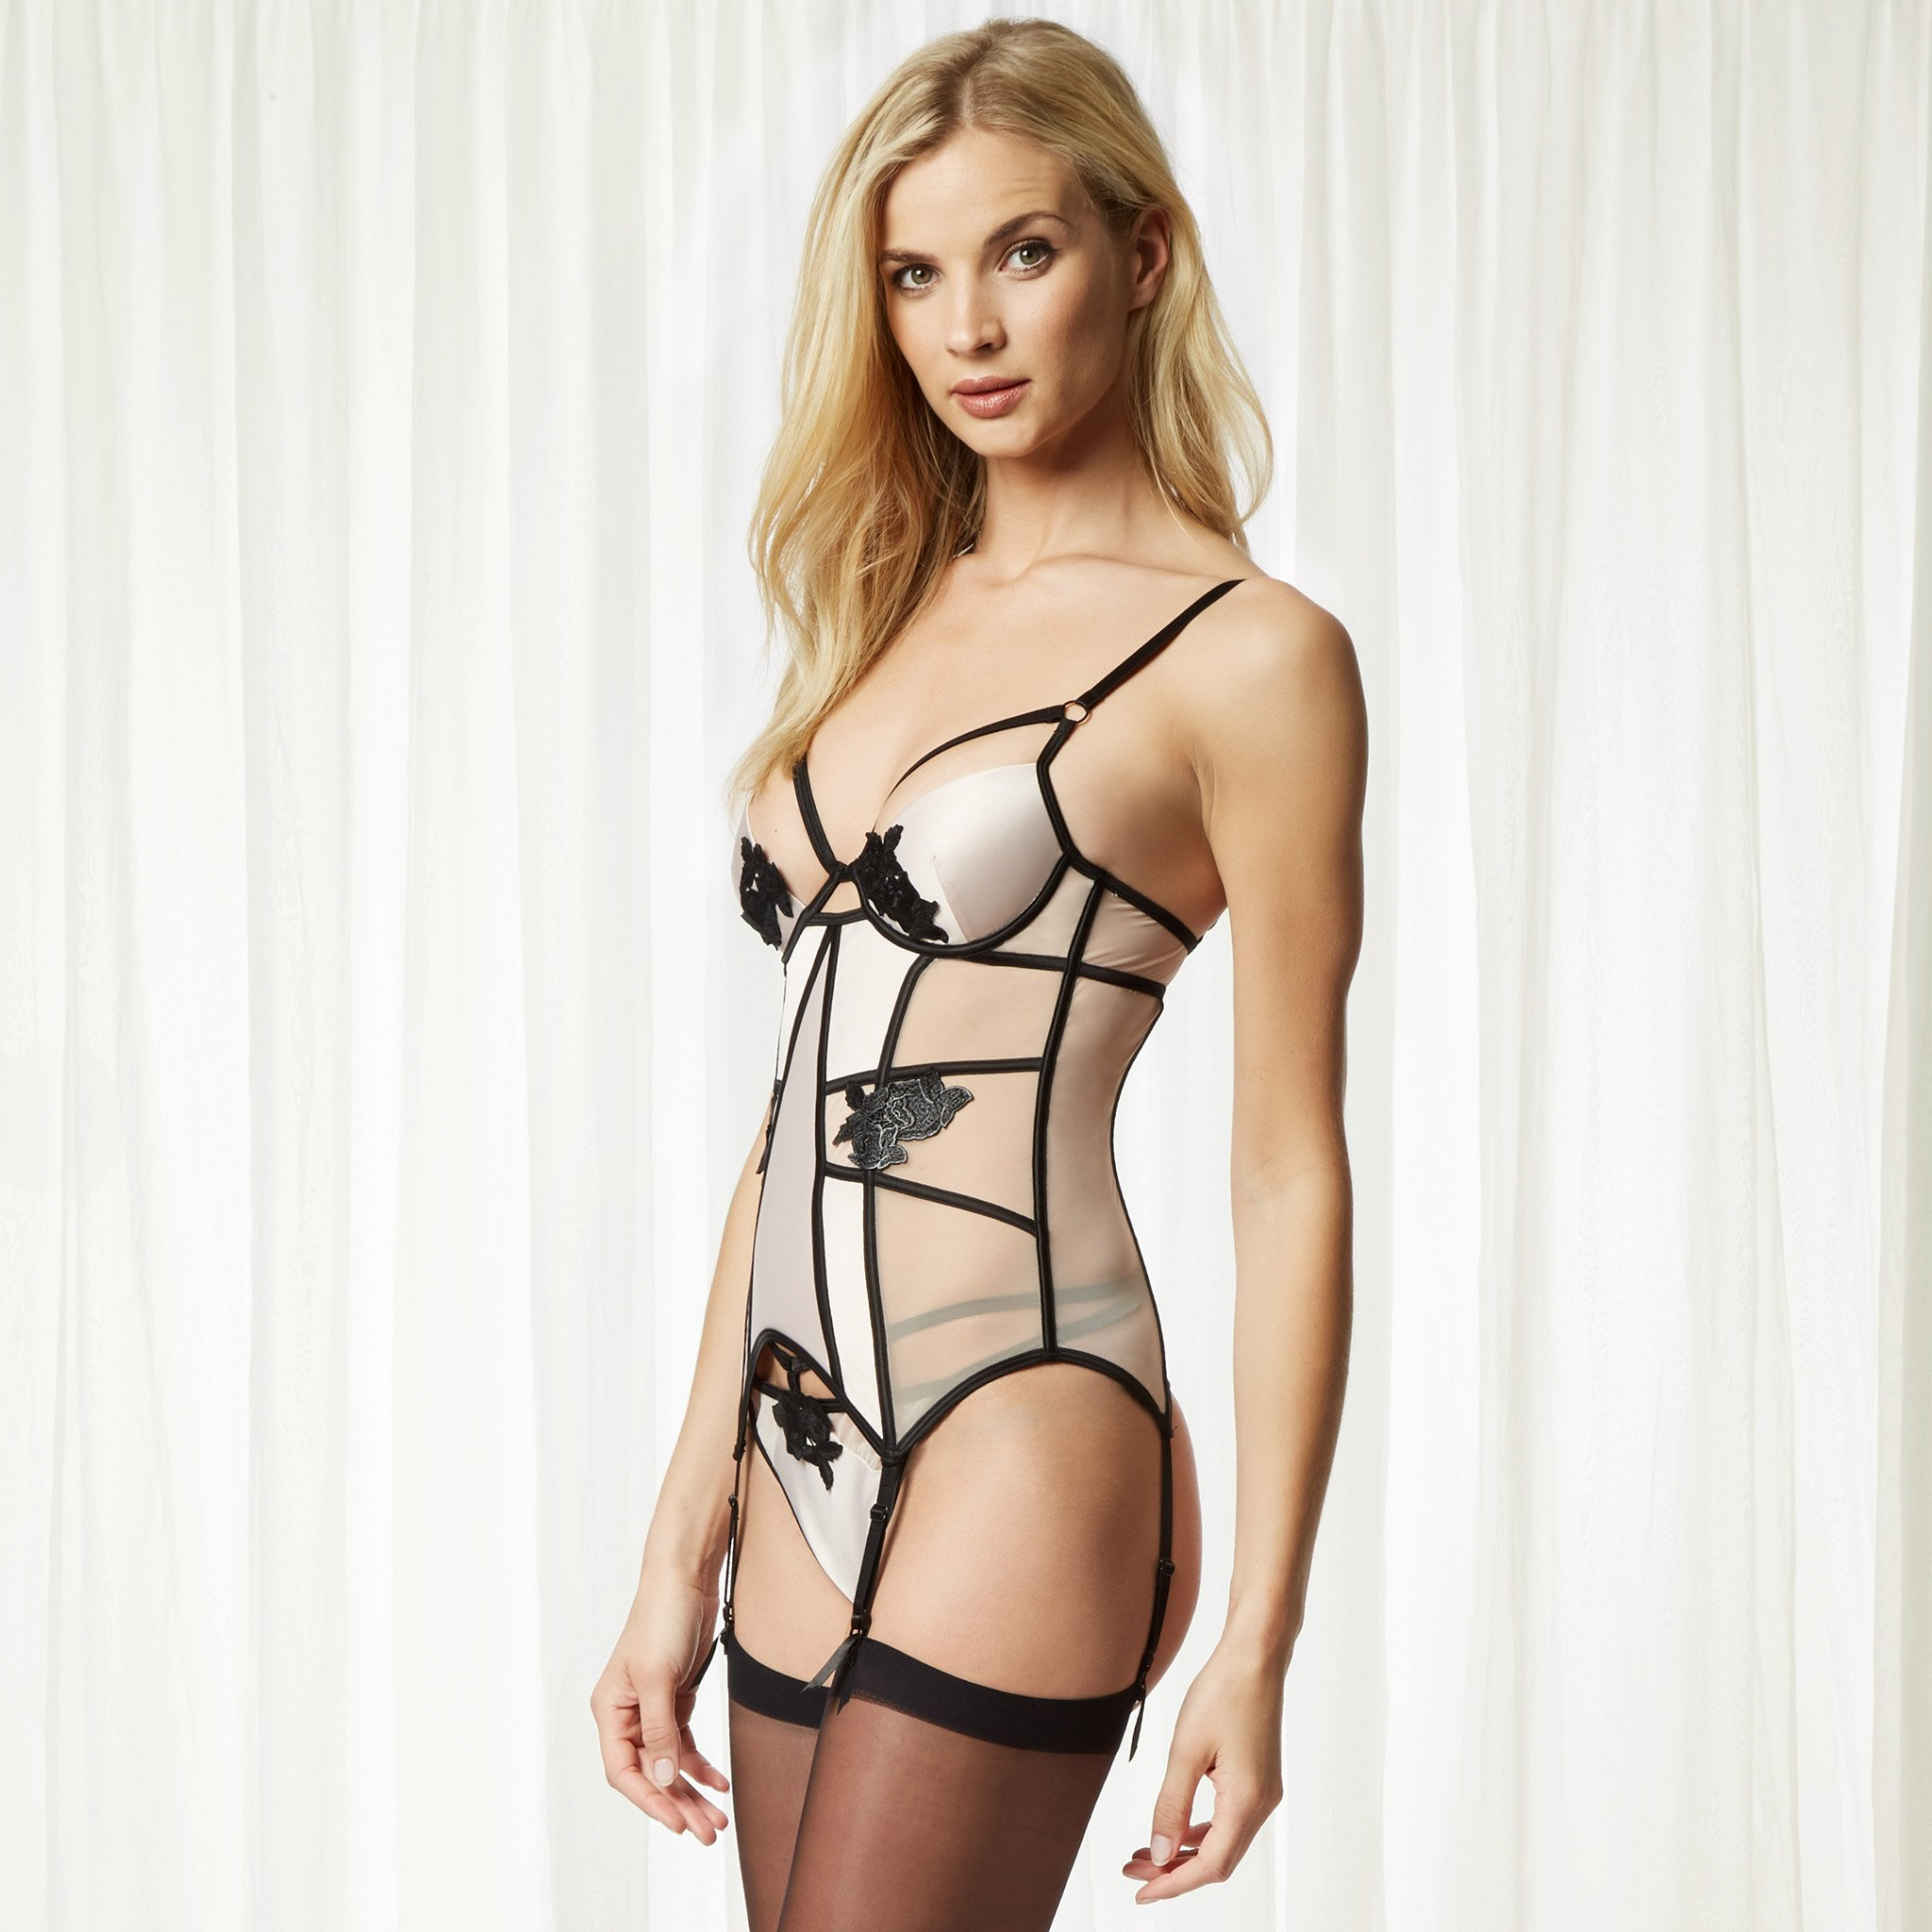 70570be0d699c Bluebella lingerie launches New Season plus discount codes